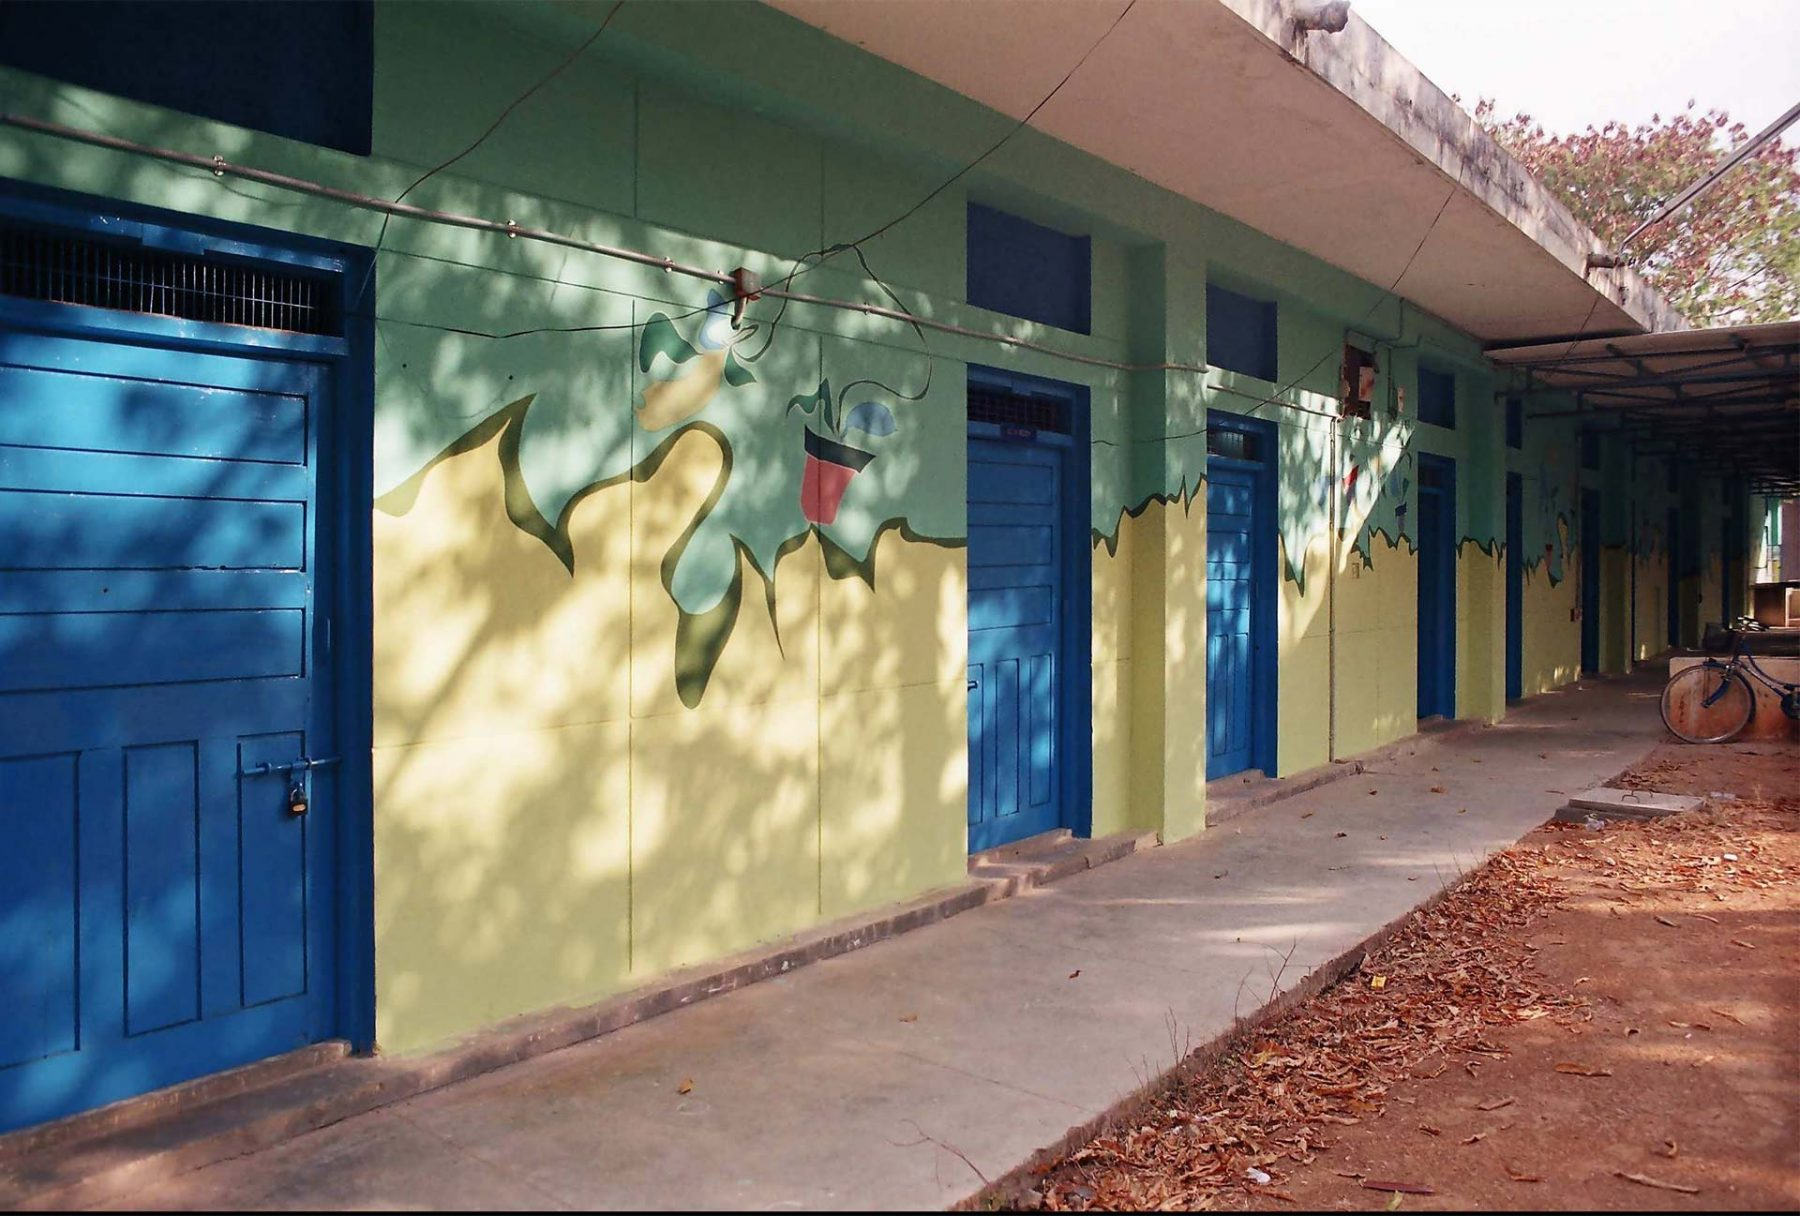 Potted Plants (2005) S.N. School of Fine Arts, University of Hyderabad, series of 9 walls each 3.5H x 5.8W meters, Hyderabad (India)